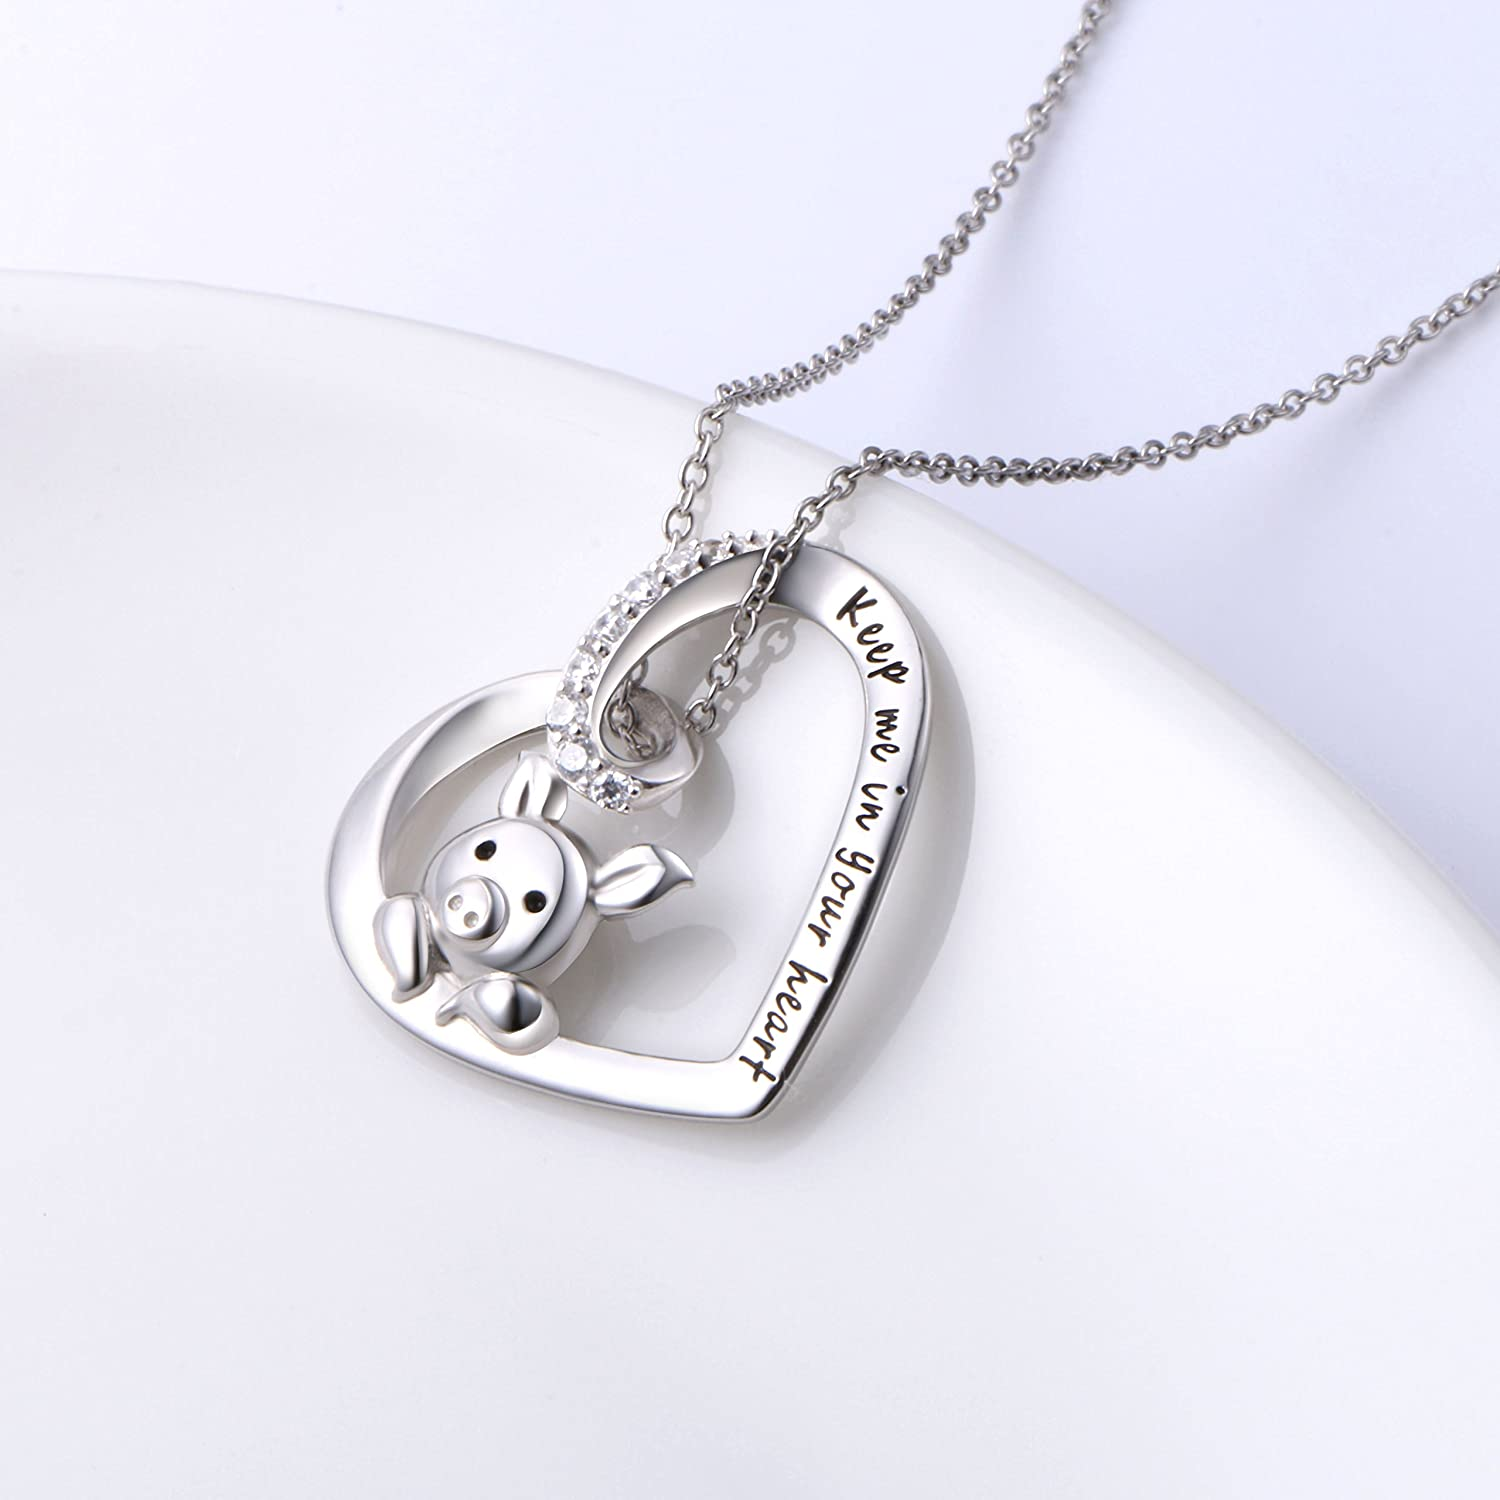 New Fashion Cute Romantic Pig Girlfriend Gift Necklace,925 Sterling Silver,Minimalist Necklace,Boho Necklace,Gift for her,Bridesmaids Gift